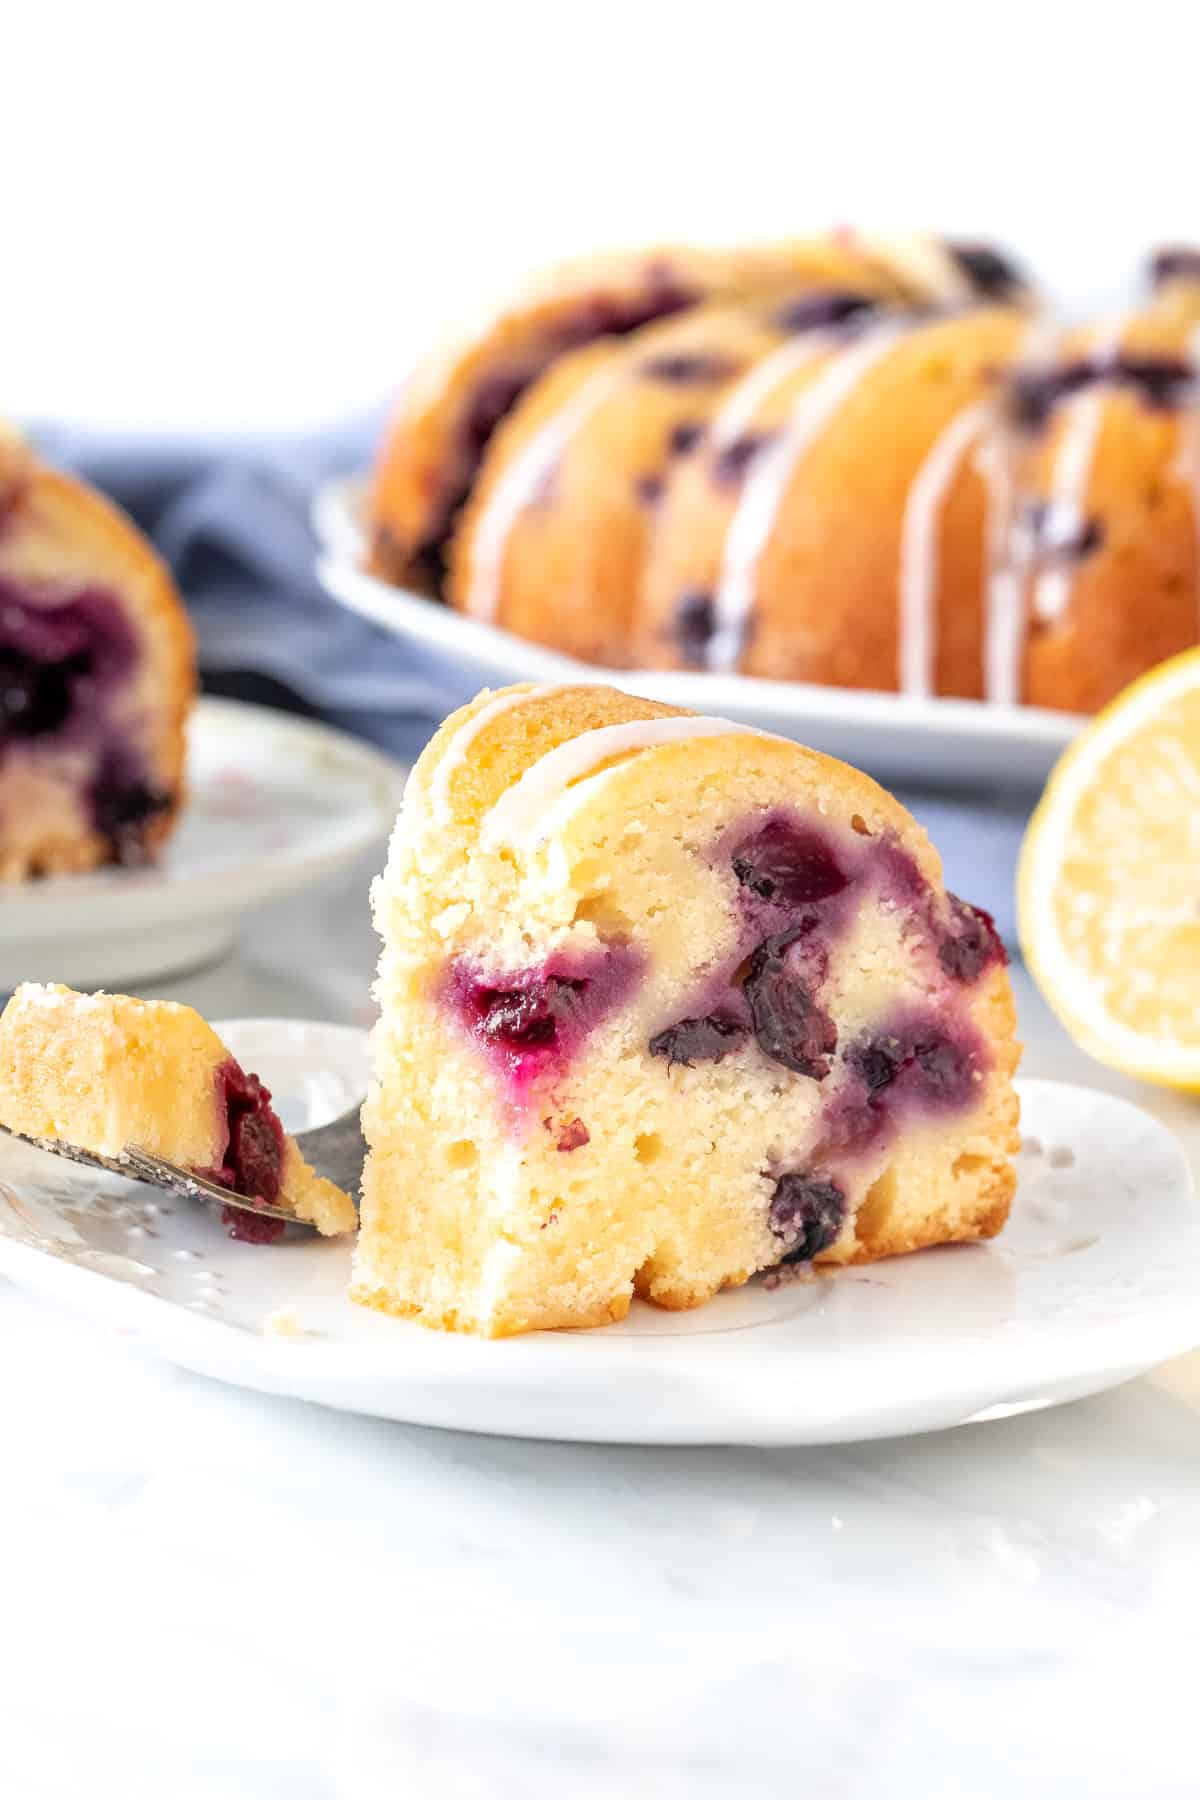 Slice of bundt cake dotted with berries.